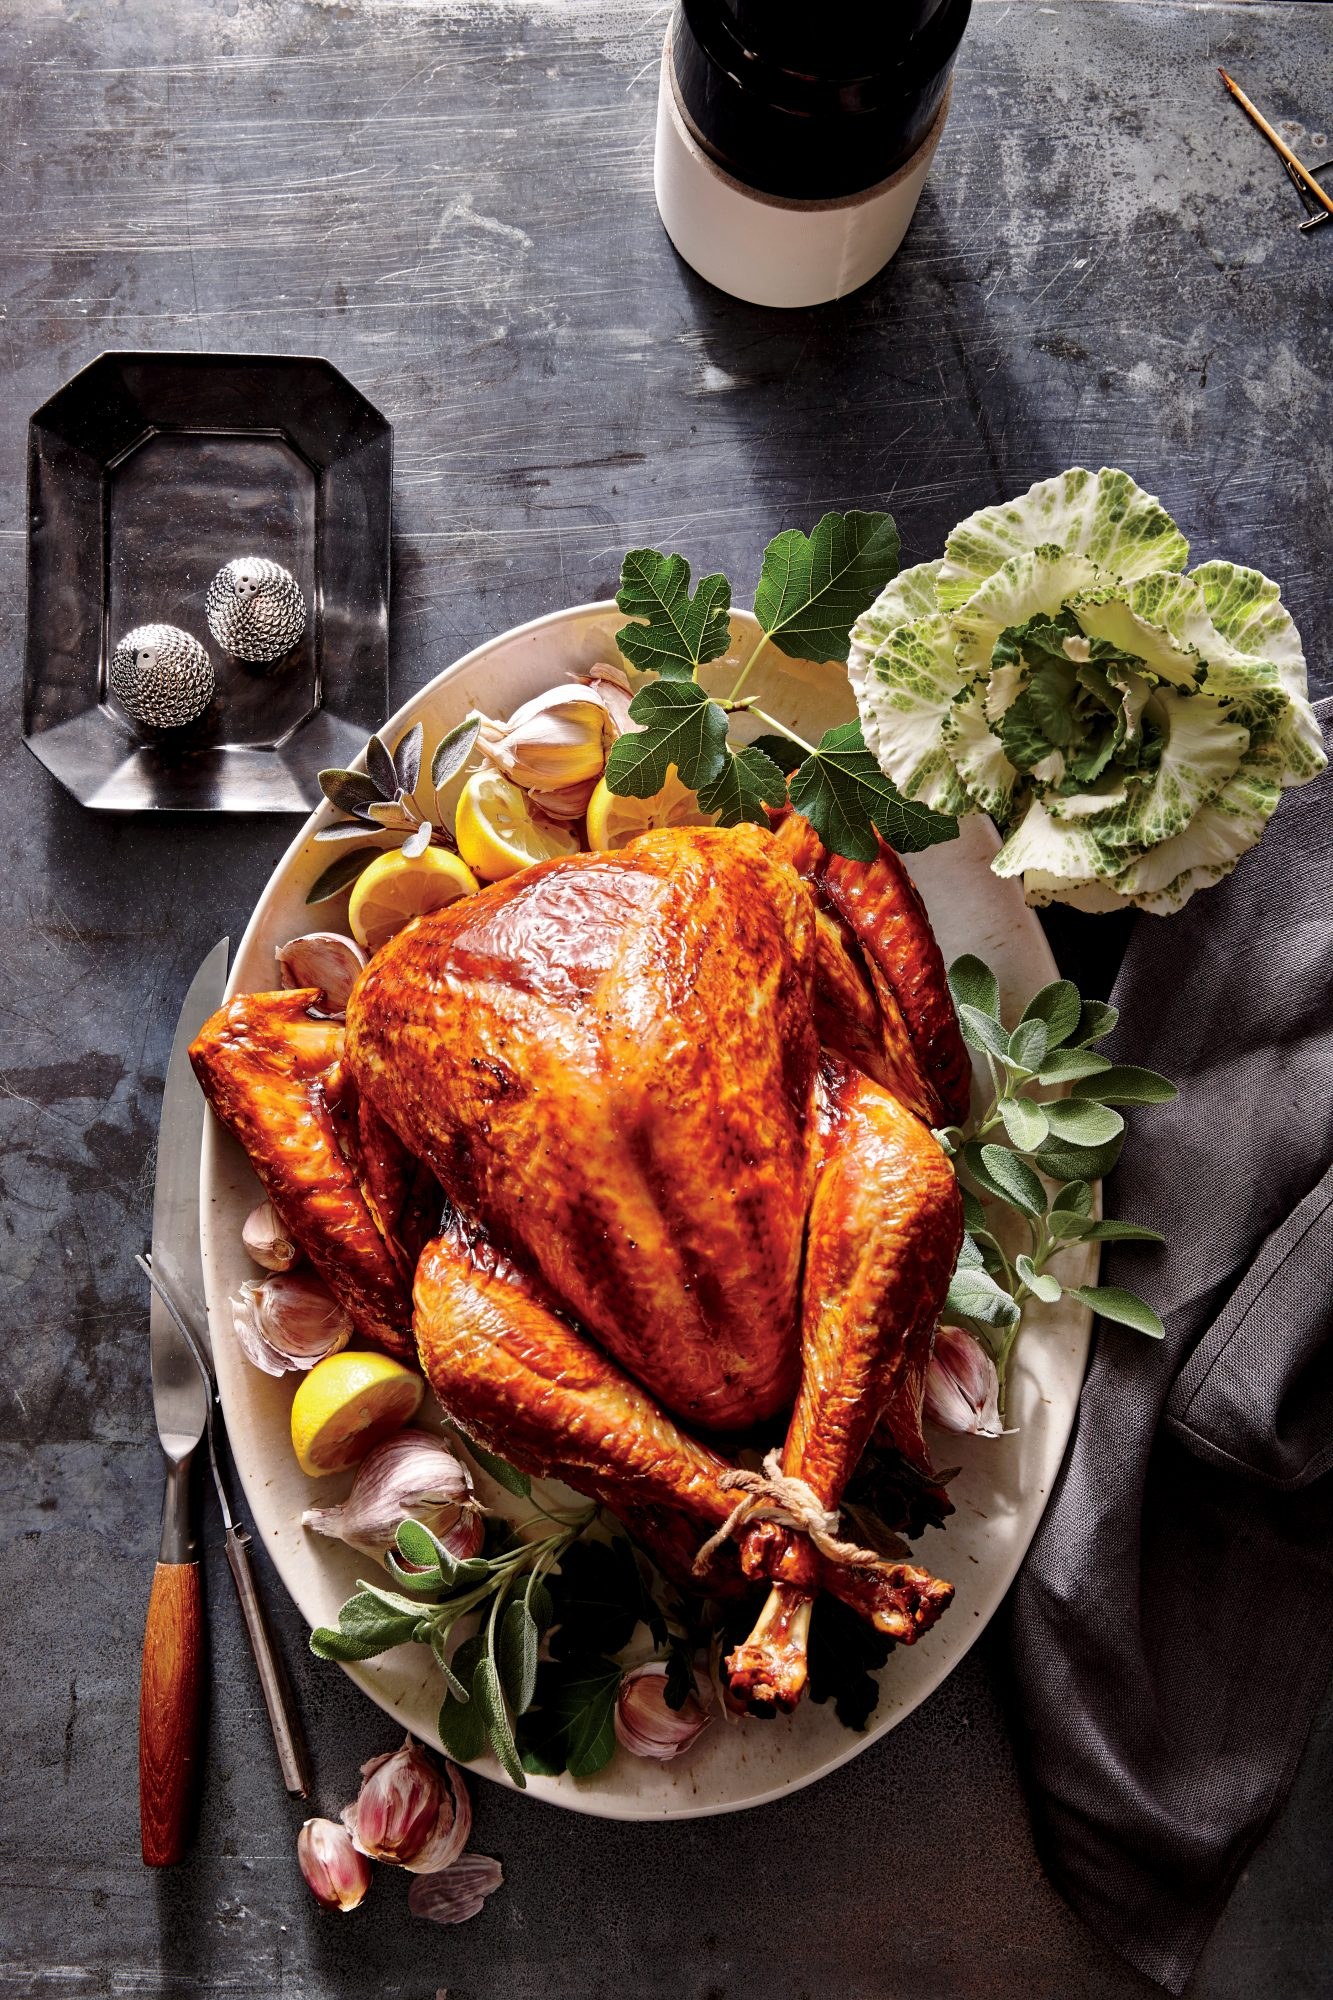 How to Make a Gorgeous Thanksgiving Turkey, According to a Food Stylist